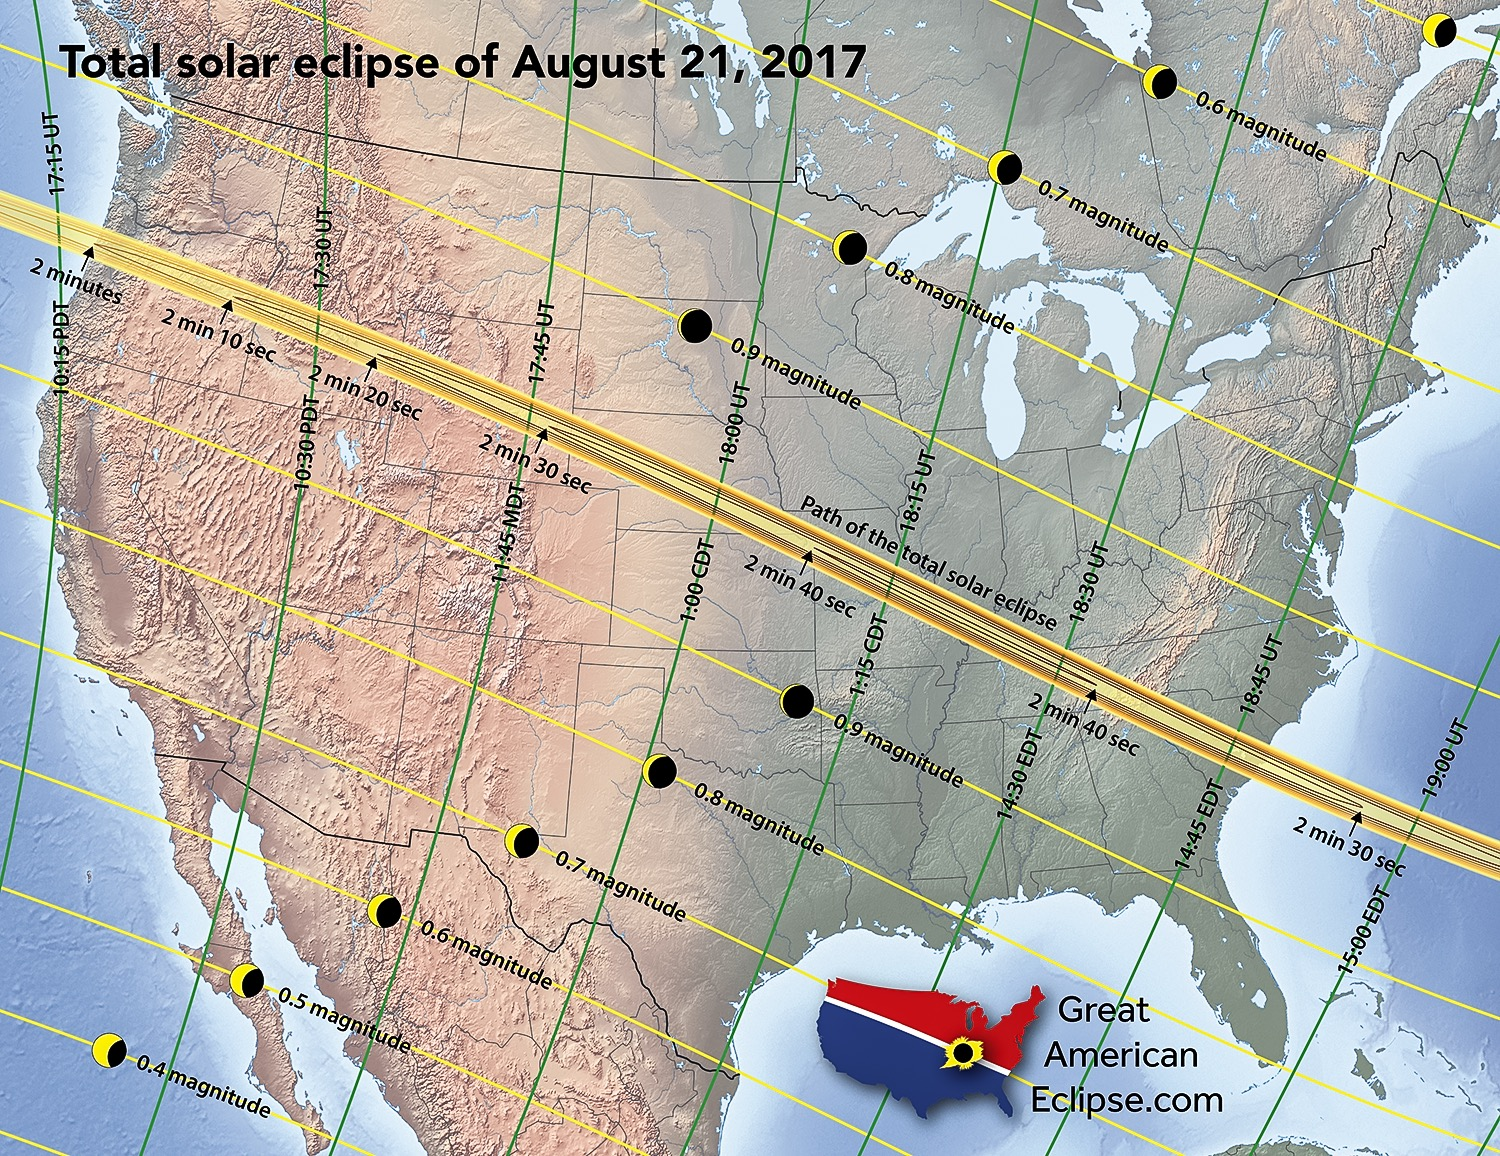 Eclipse Path with Percent